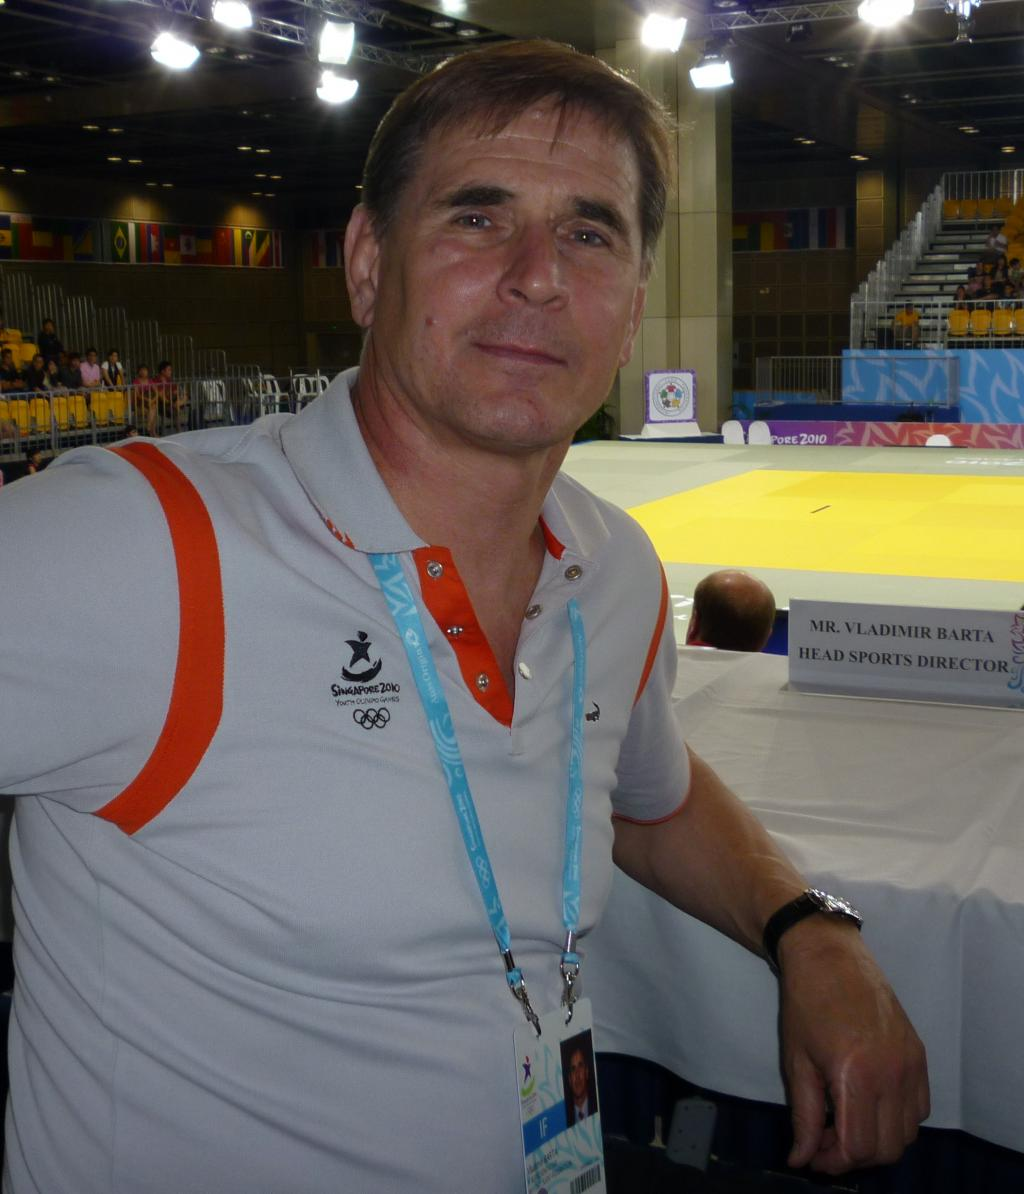 Vladimir Barta pleased with YOG organisation and level